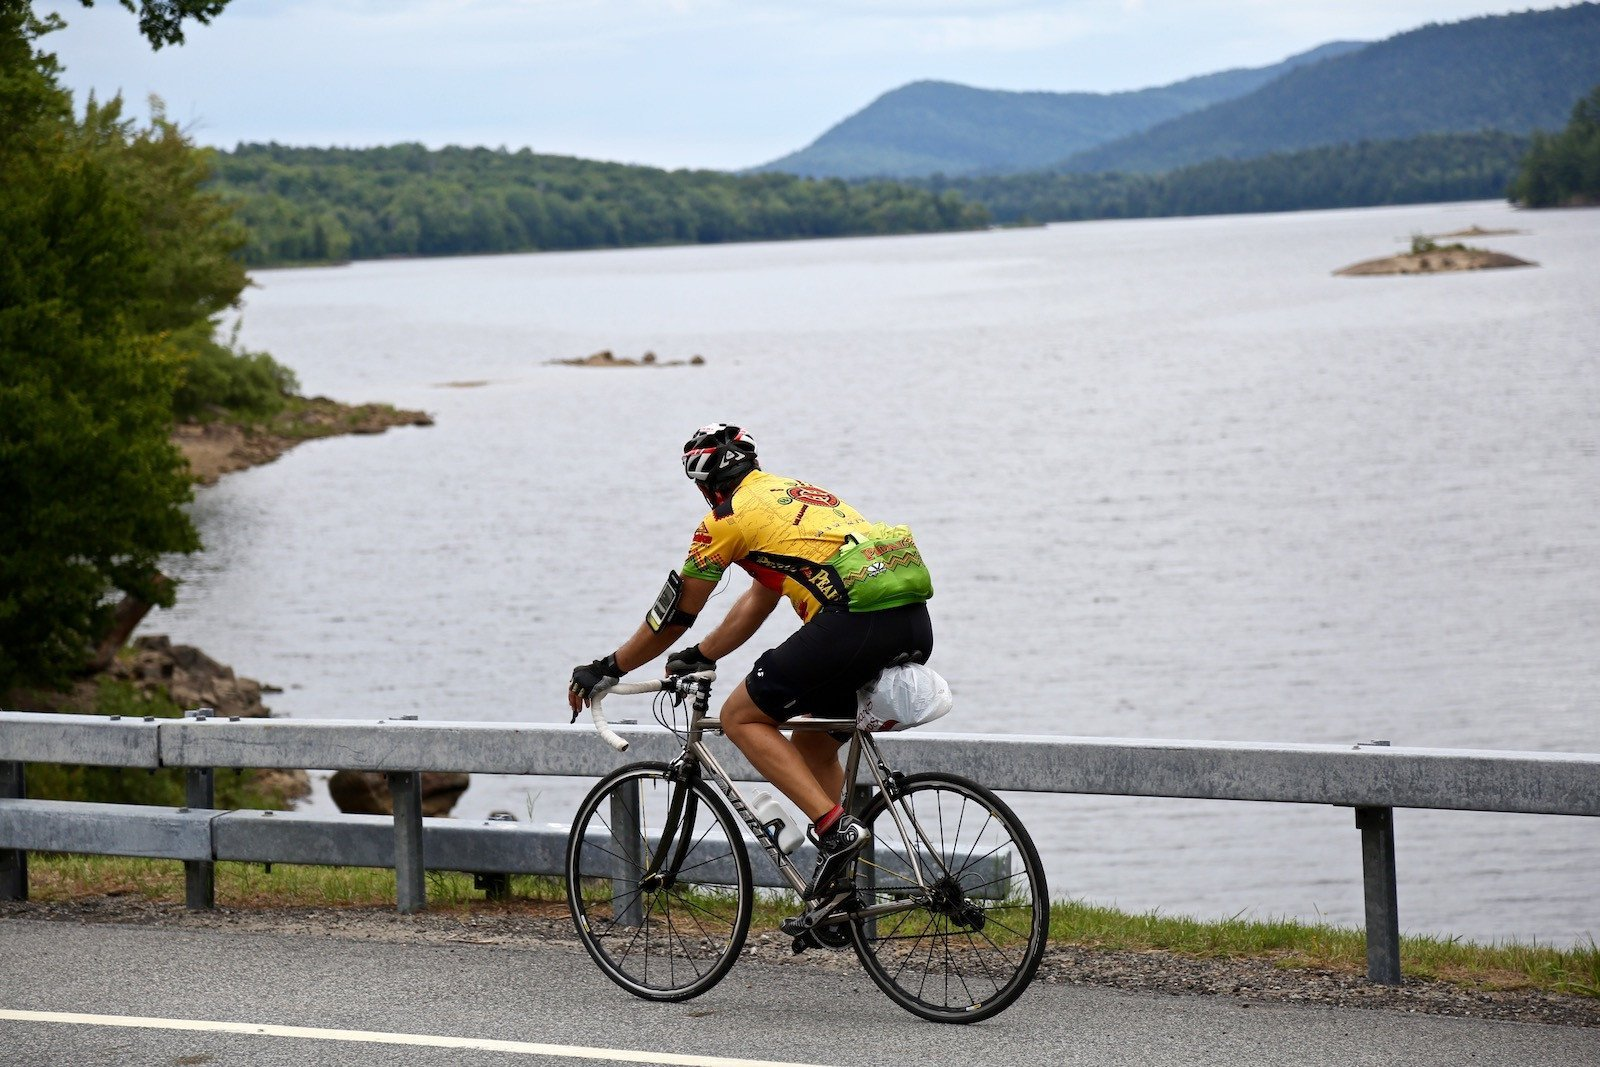 The ididaride! A 75-mile Bike Tour of the Adirondack Park